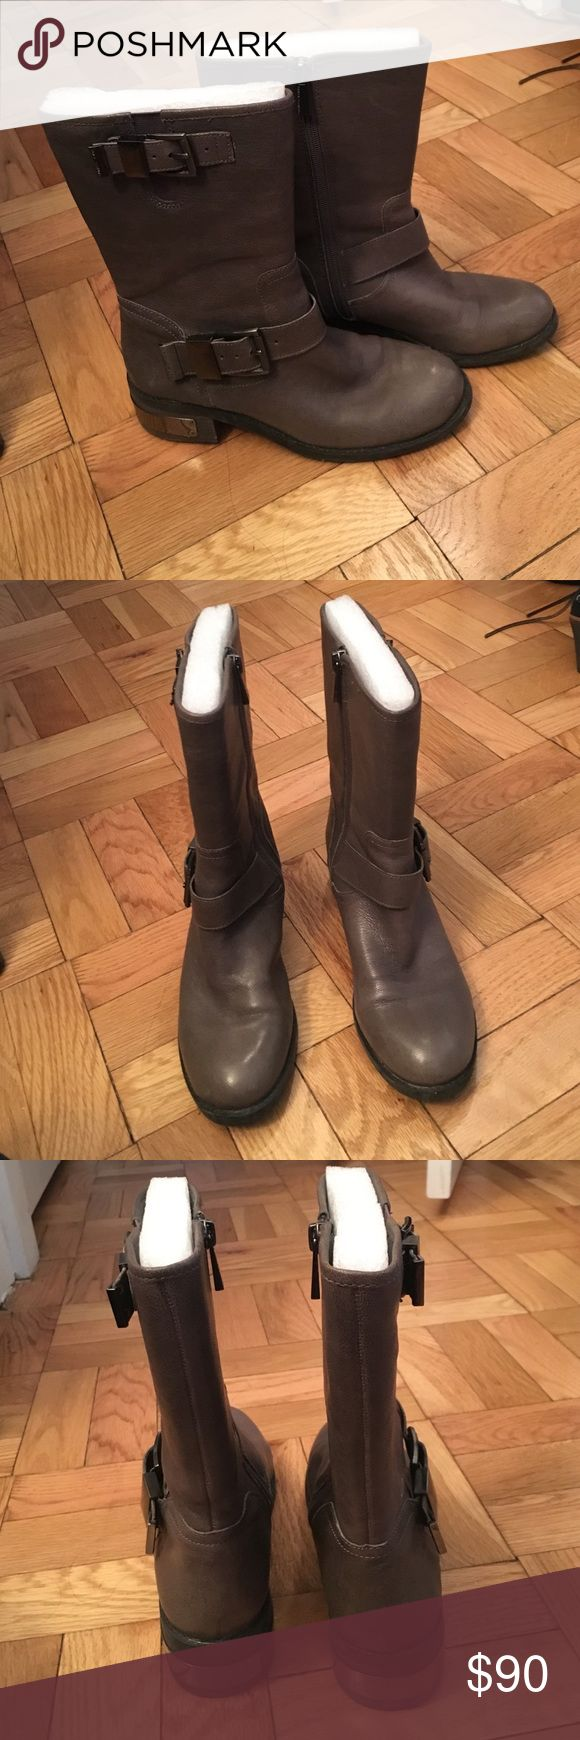 The best ankle boots Perfect ankle boots for fall and winter! Great color with gunmetal details. Lightly worn Vince Camuto Shoes Ankle Boots & Booties